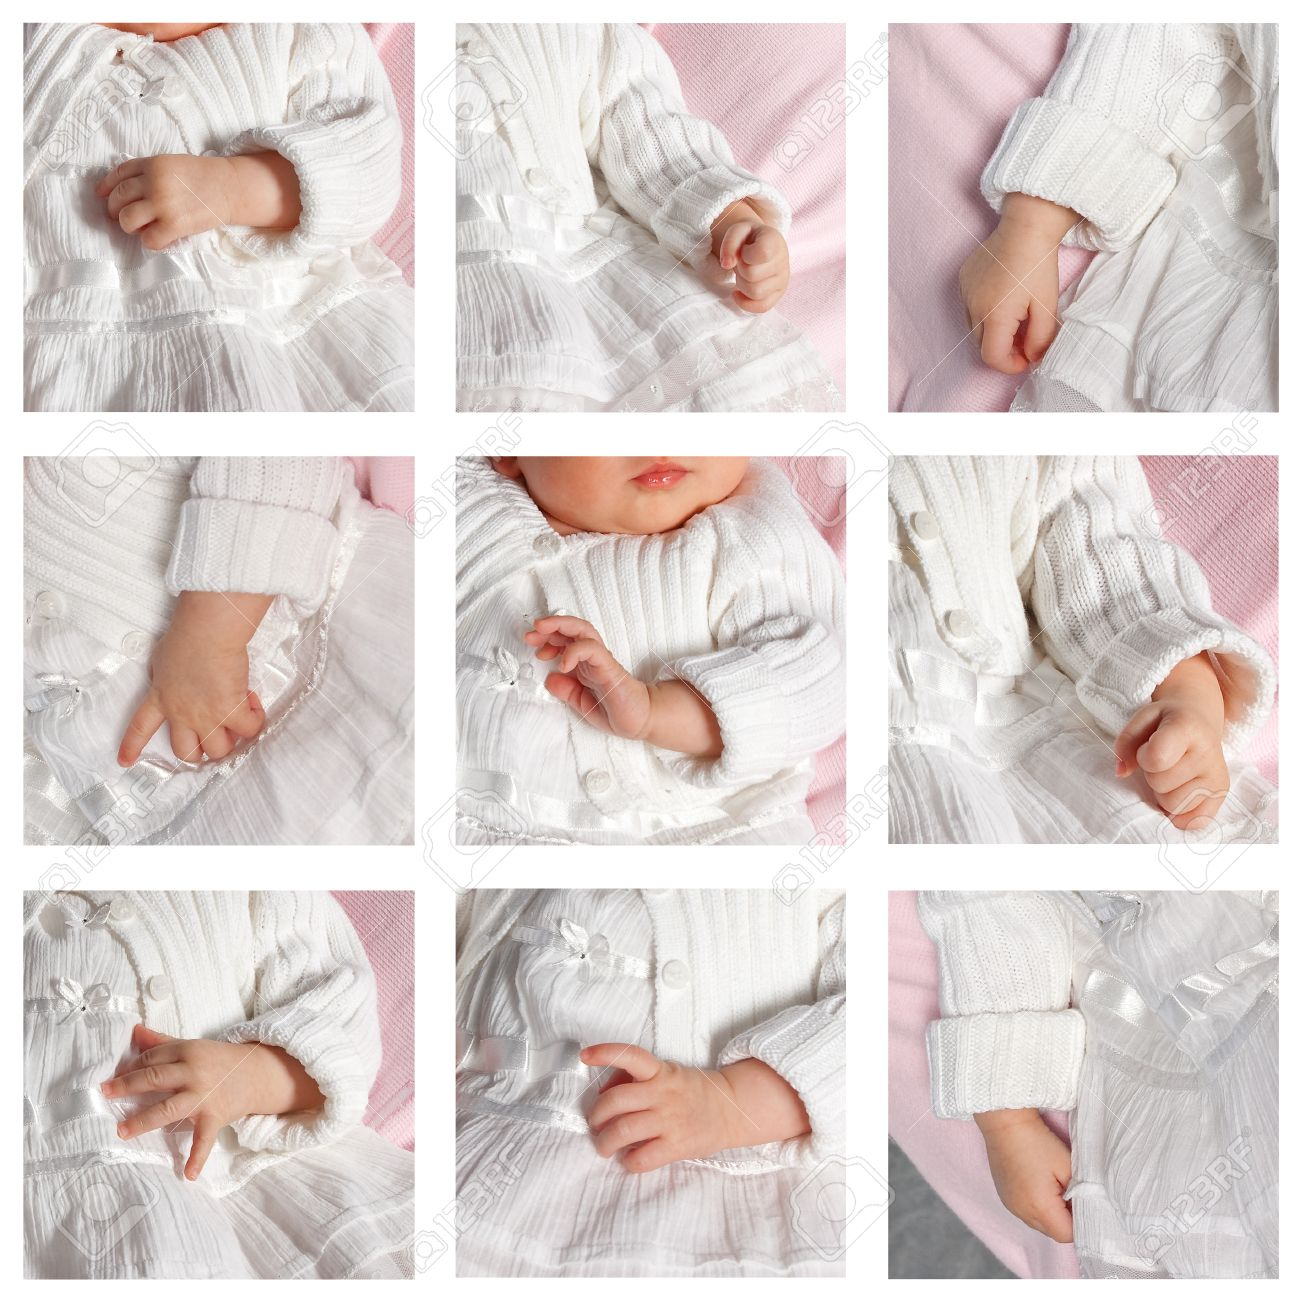 Collage Fotos Collage Of Nine Photo Of Baby Hands